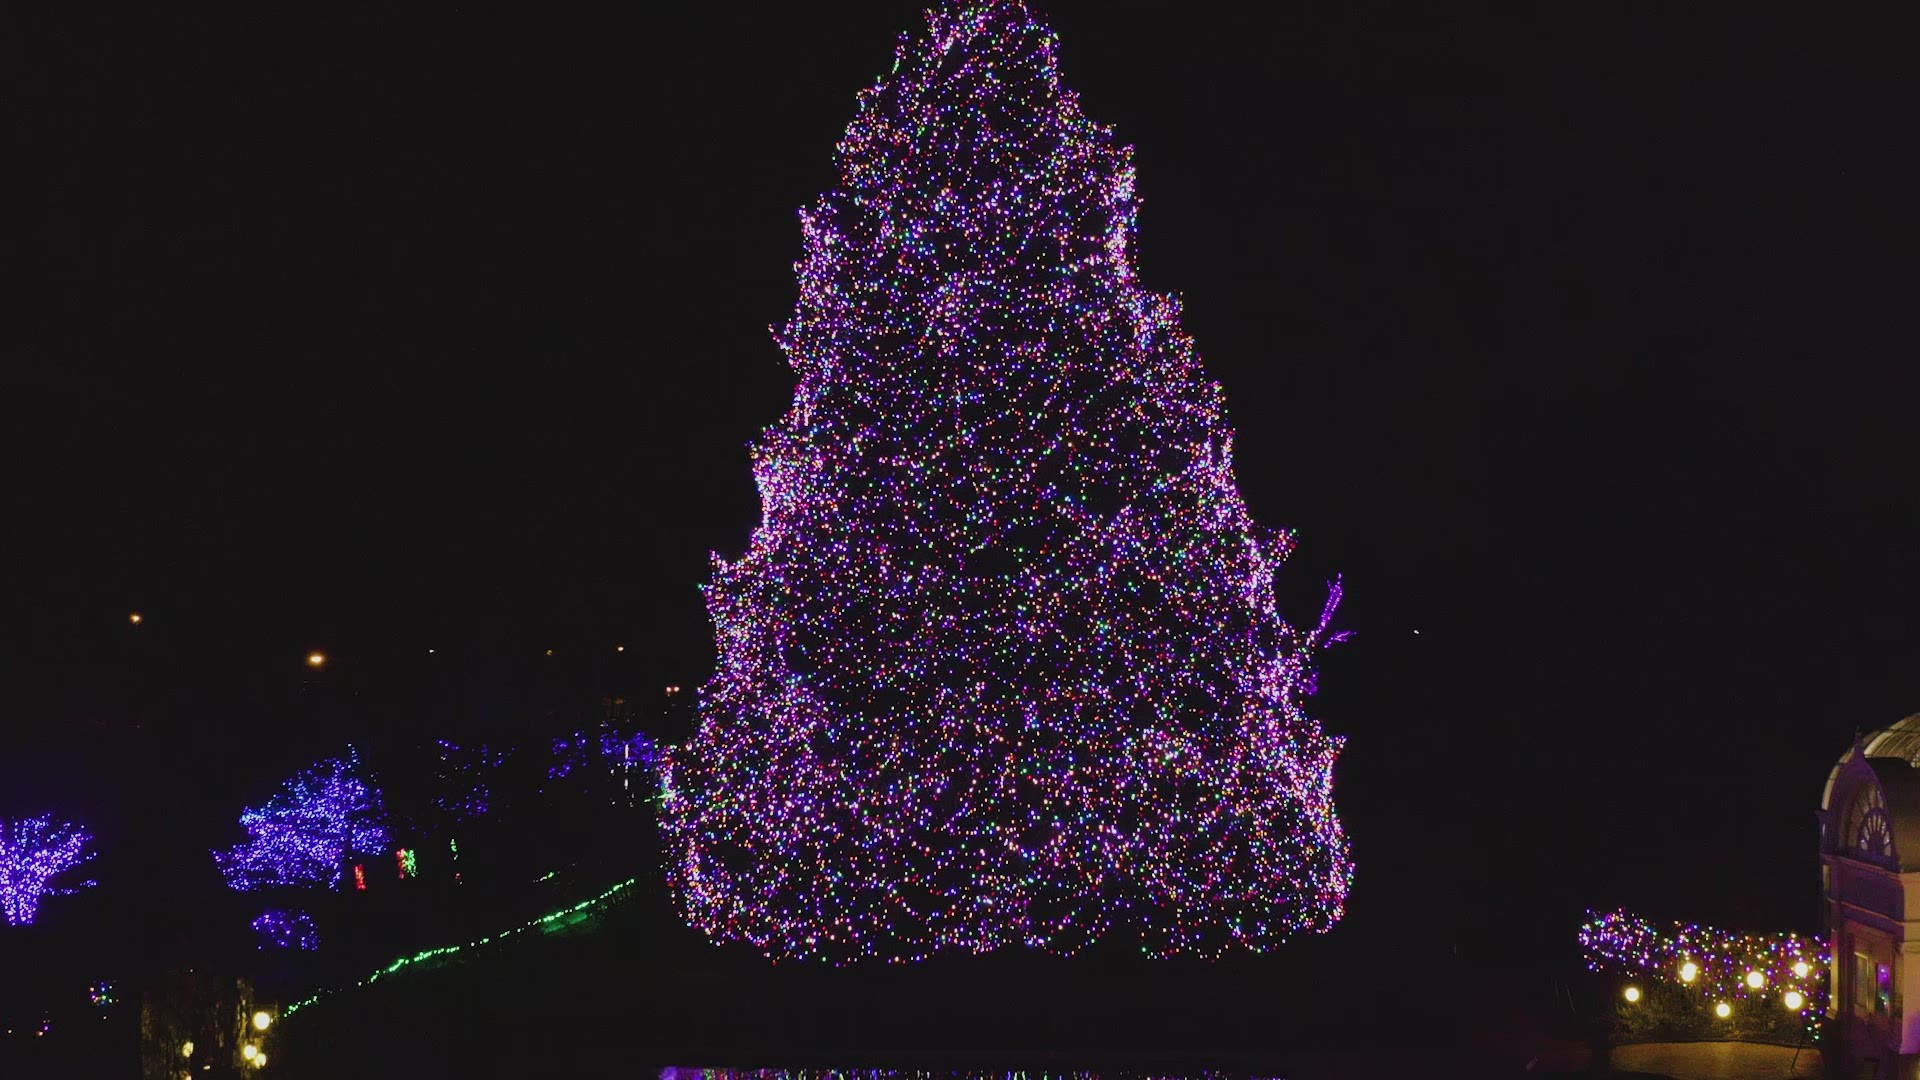 Toledo Zoo Christmas 2020 Dates Toledo Zoo Lights Before Christmas tickets can be reserved | wtol.com